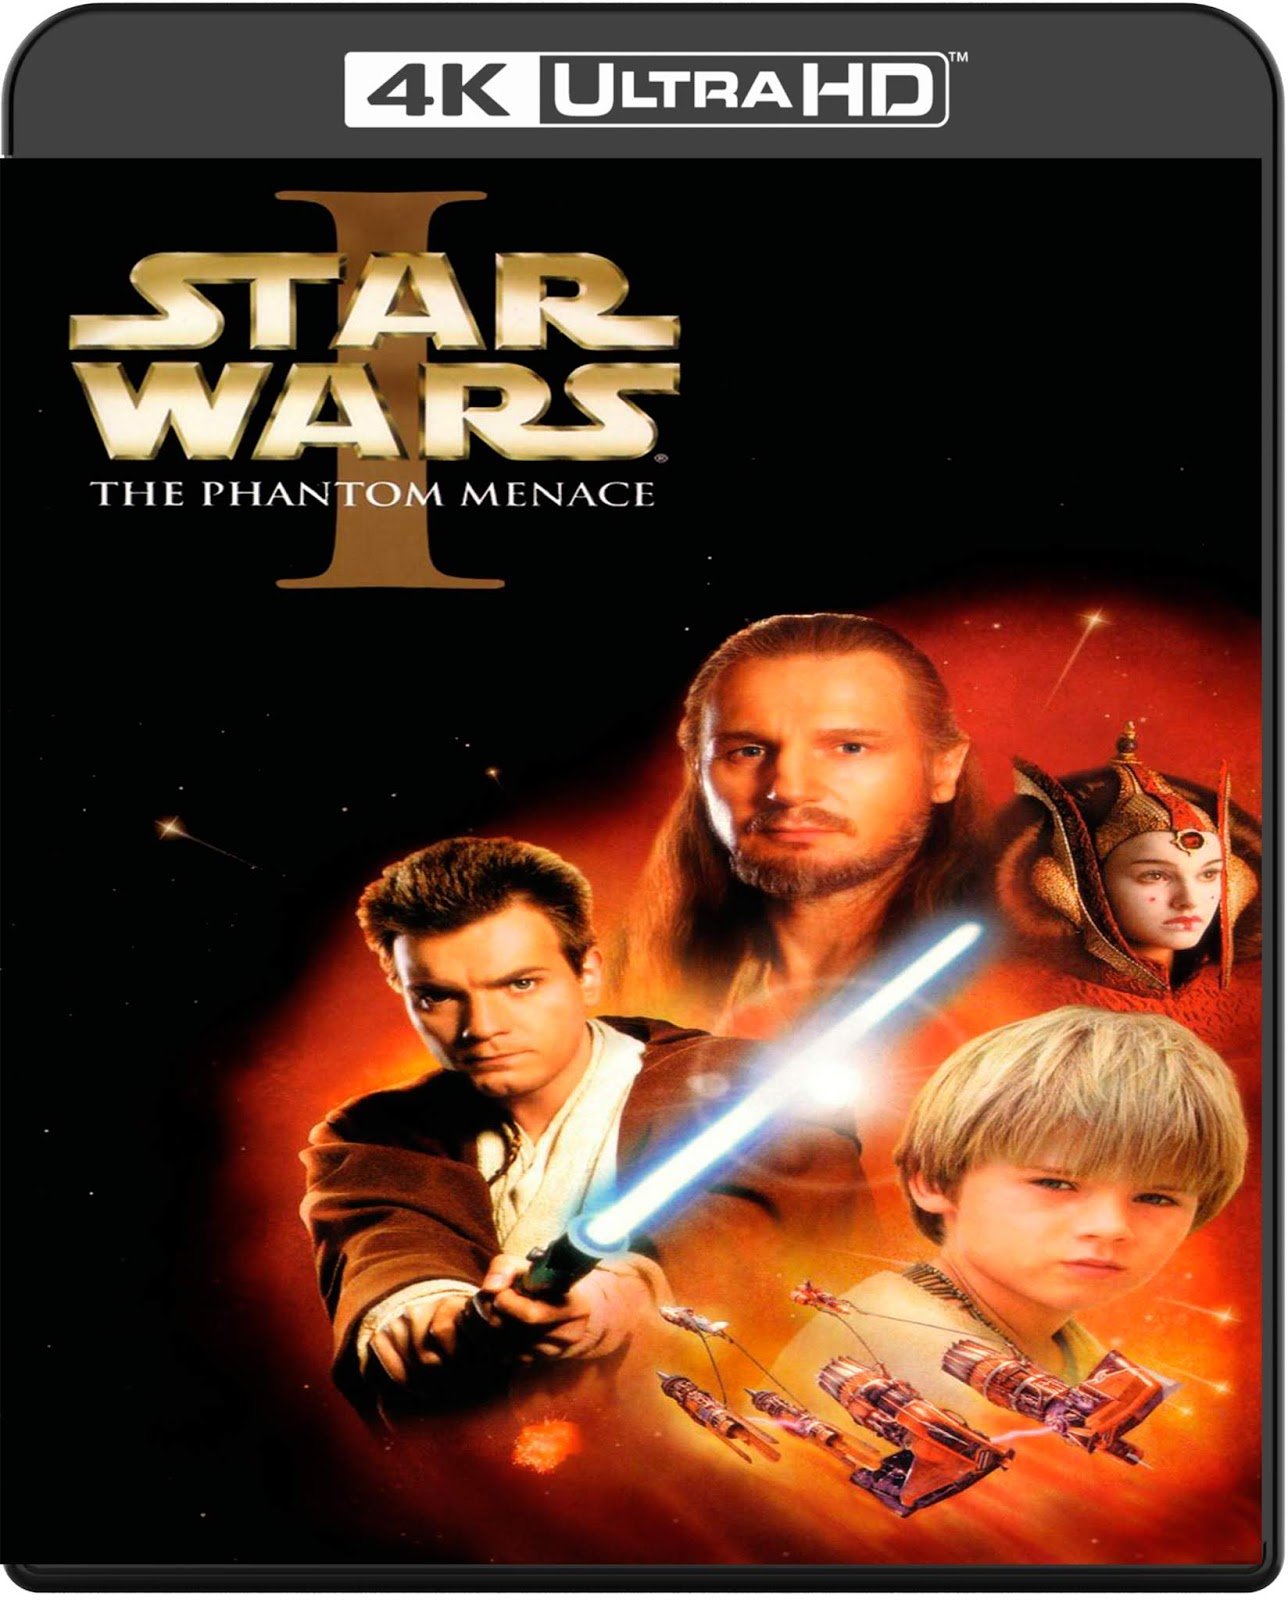 Star Wars. Episode I: The Phantom Menace [1999] [UHD] [2160p] [Latino]